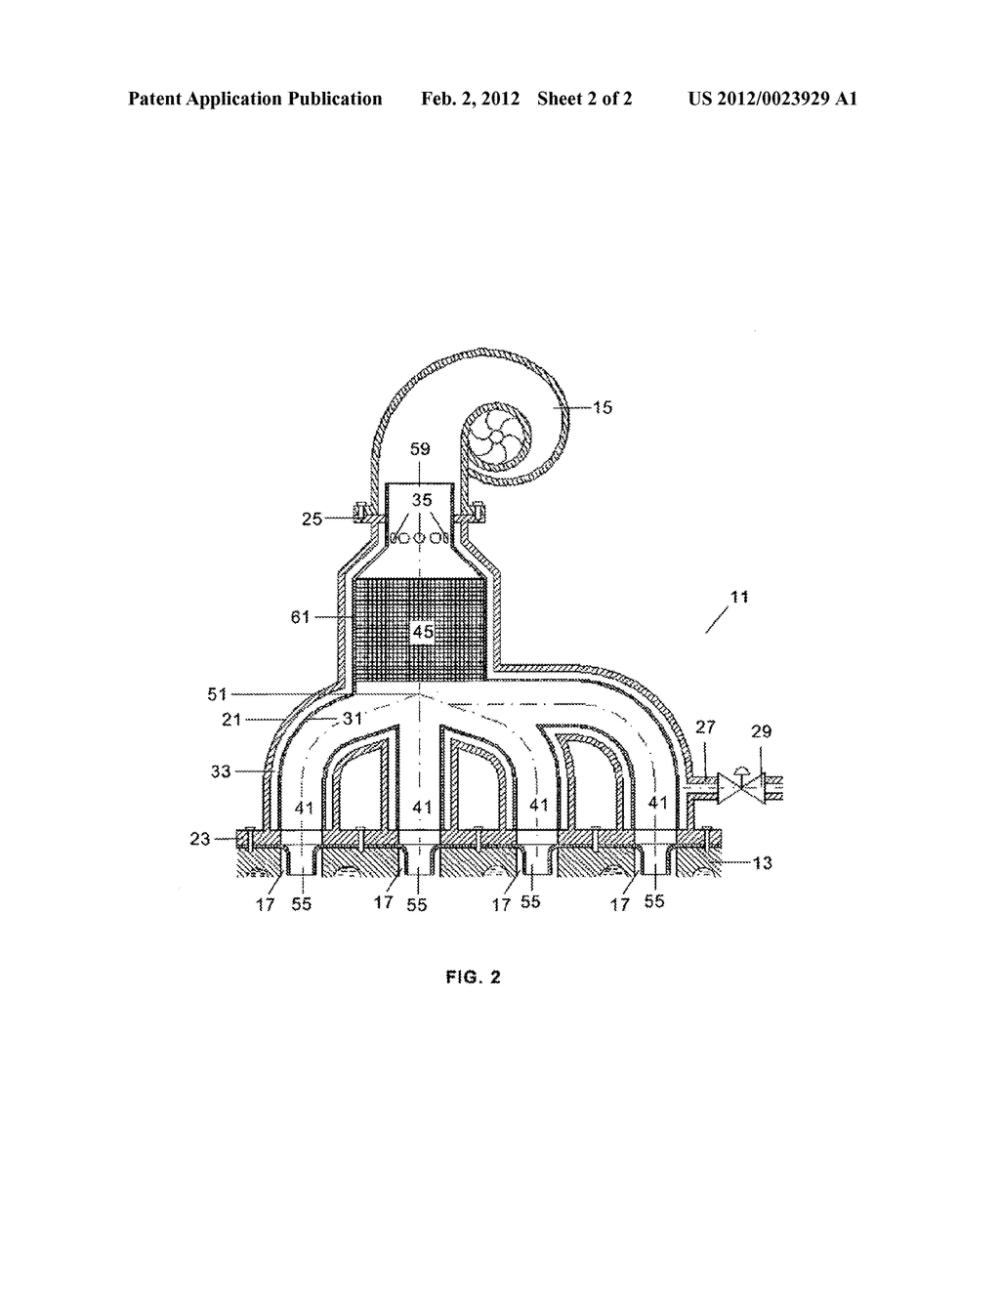 medium resolution of exhaust manifold of a turbo supercharged reciprocating engine mercruiser exhaust manifold diagram diagram exhaust manifold